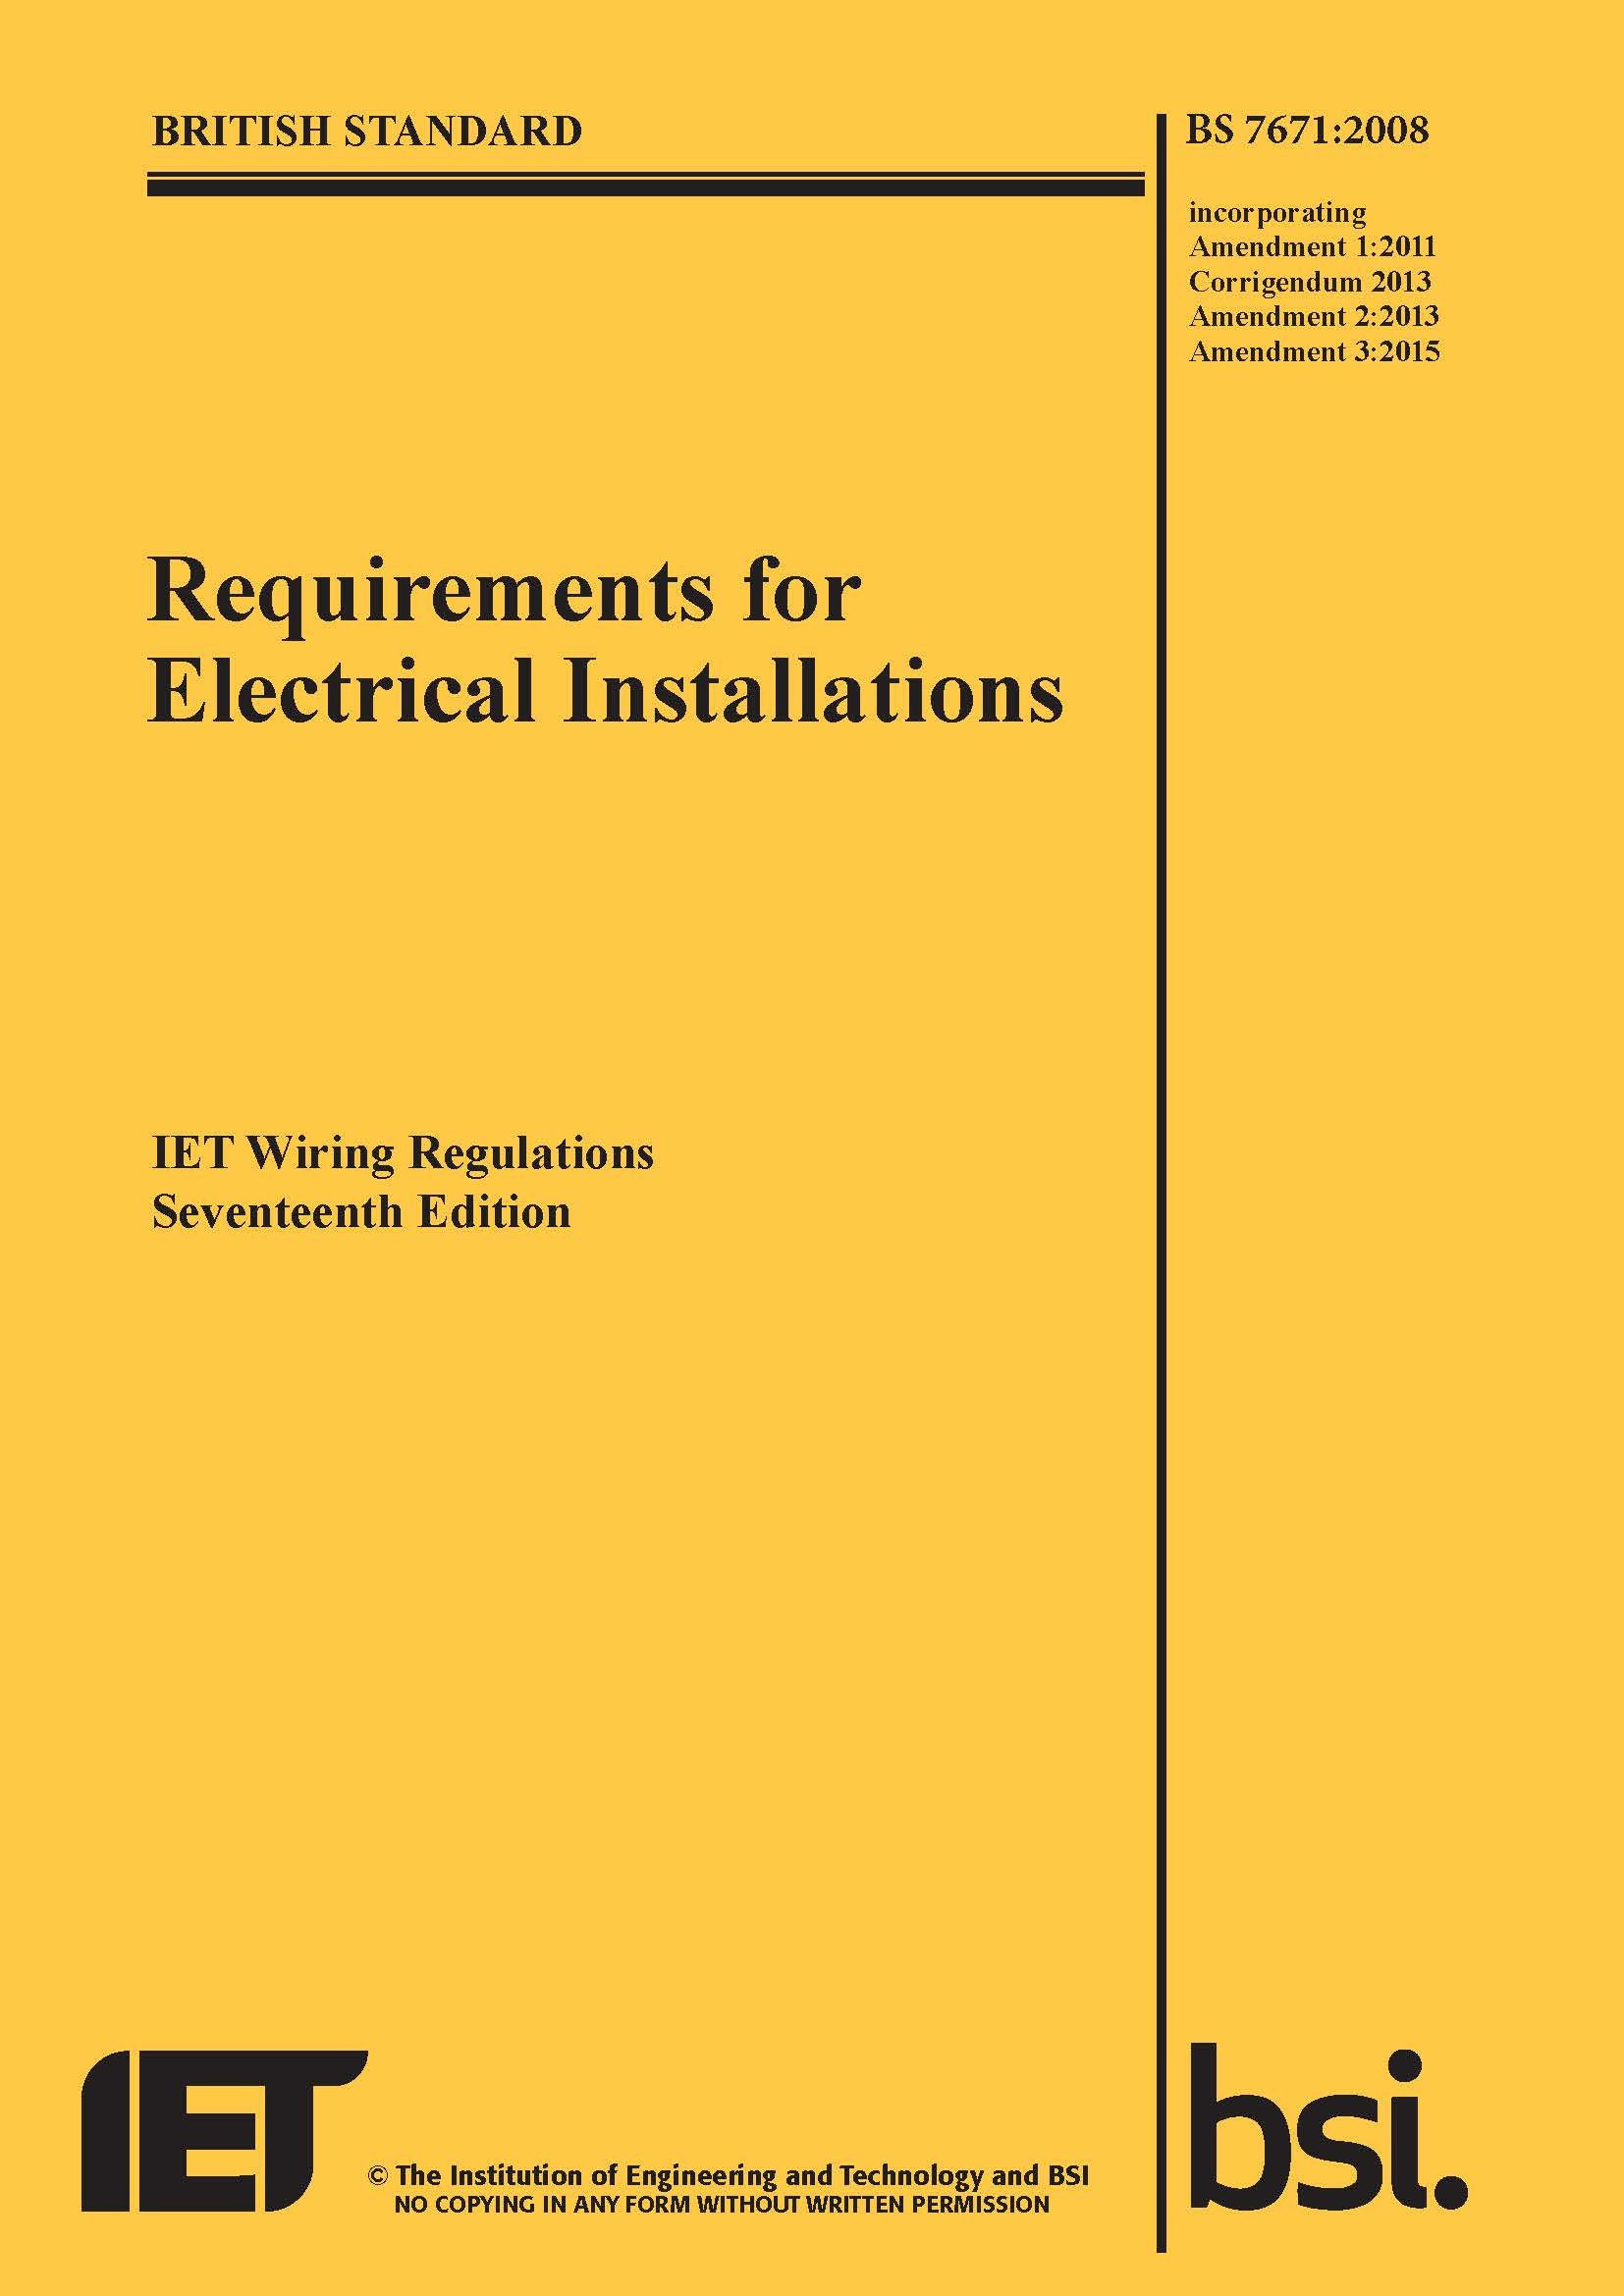 requirements for electrical installations, iet wiring regulations, wire diagram, electrical wiring residential 18th edition pdf